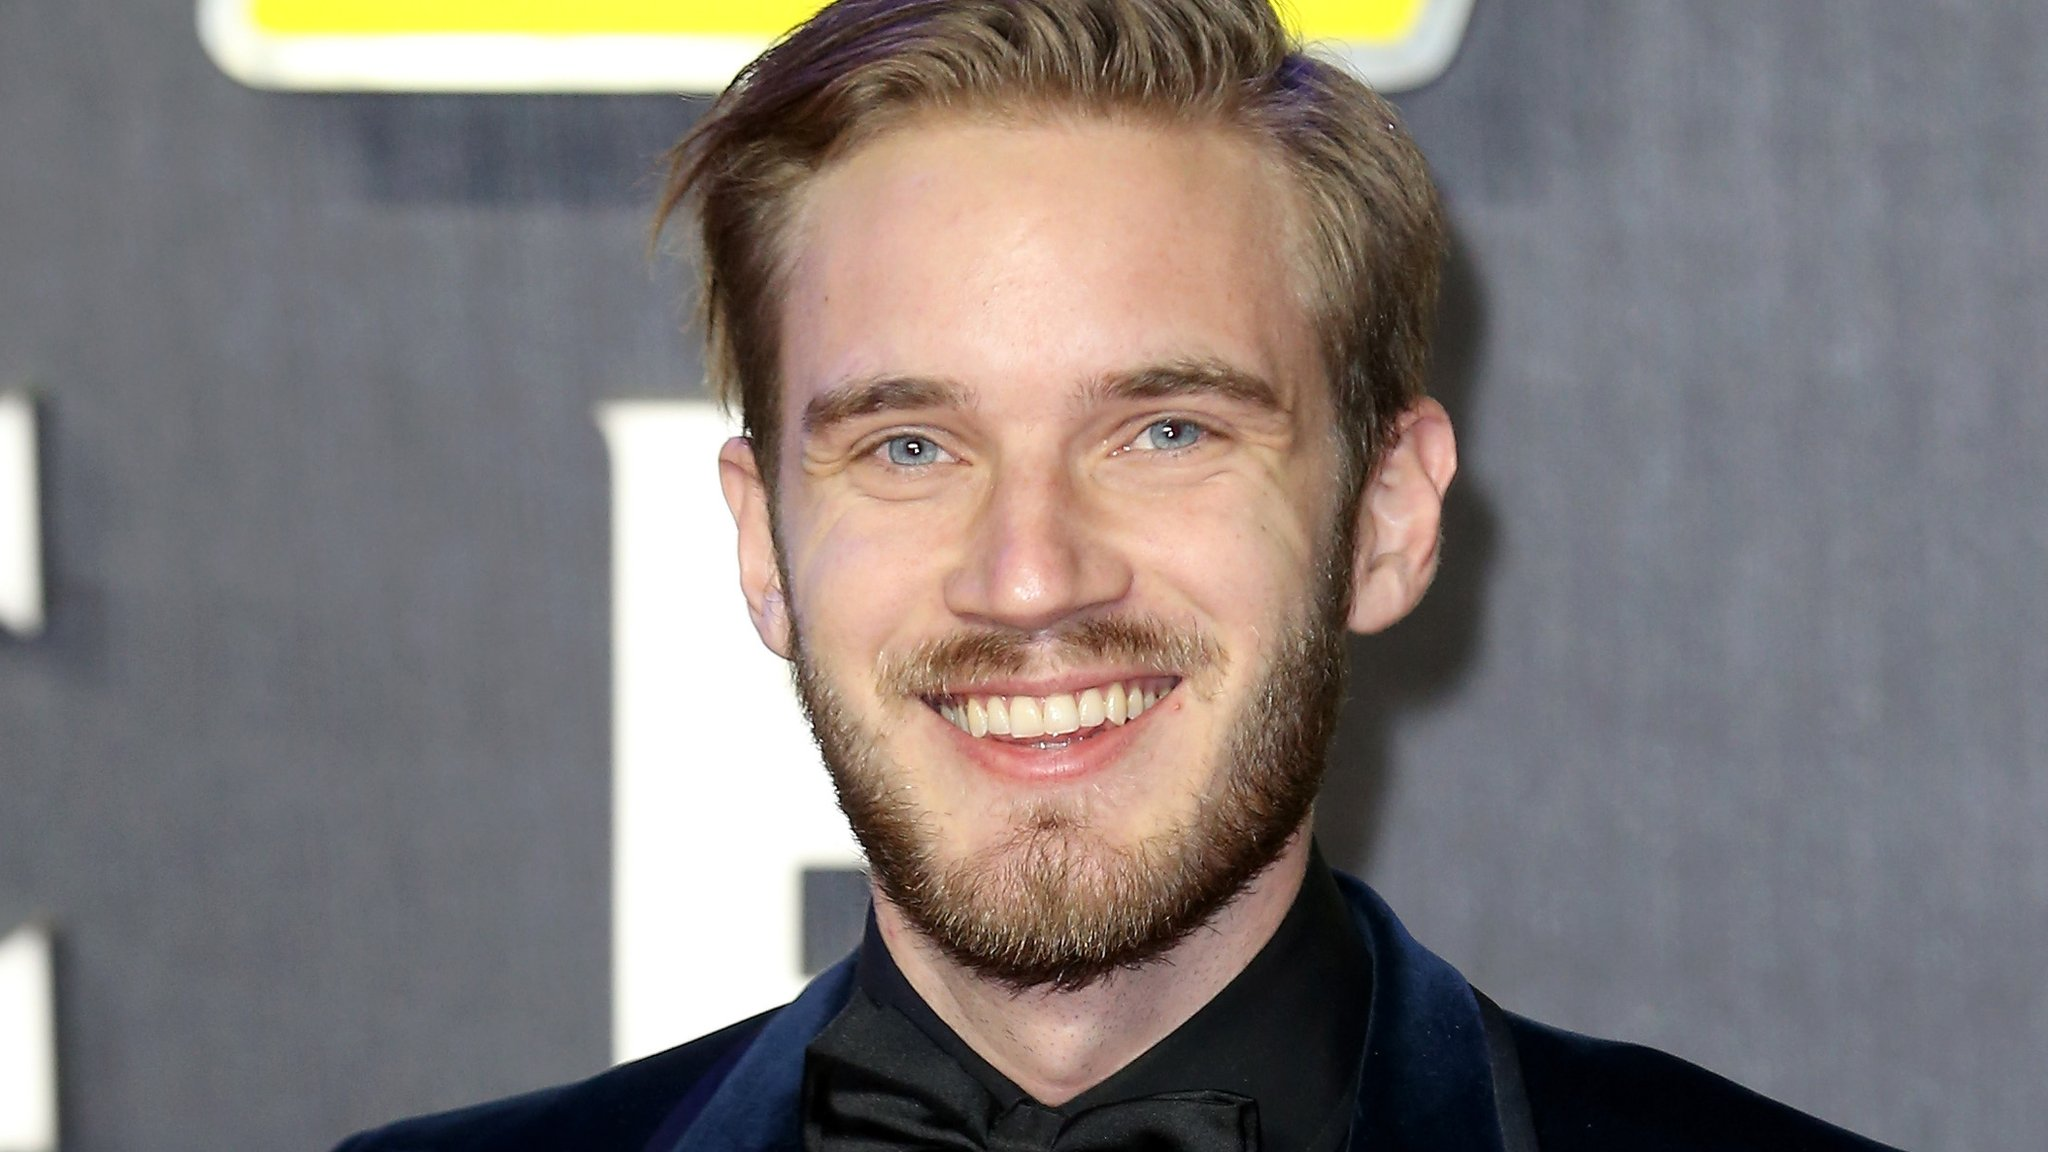 PewDiePie quit plan prompts YouTube reply